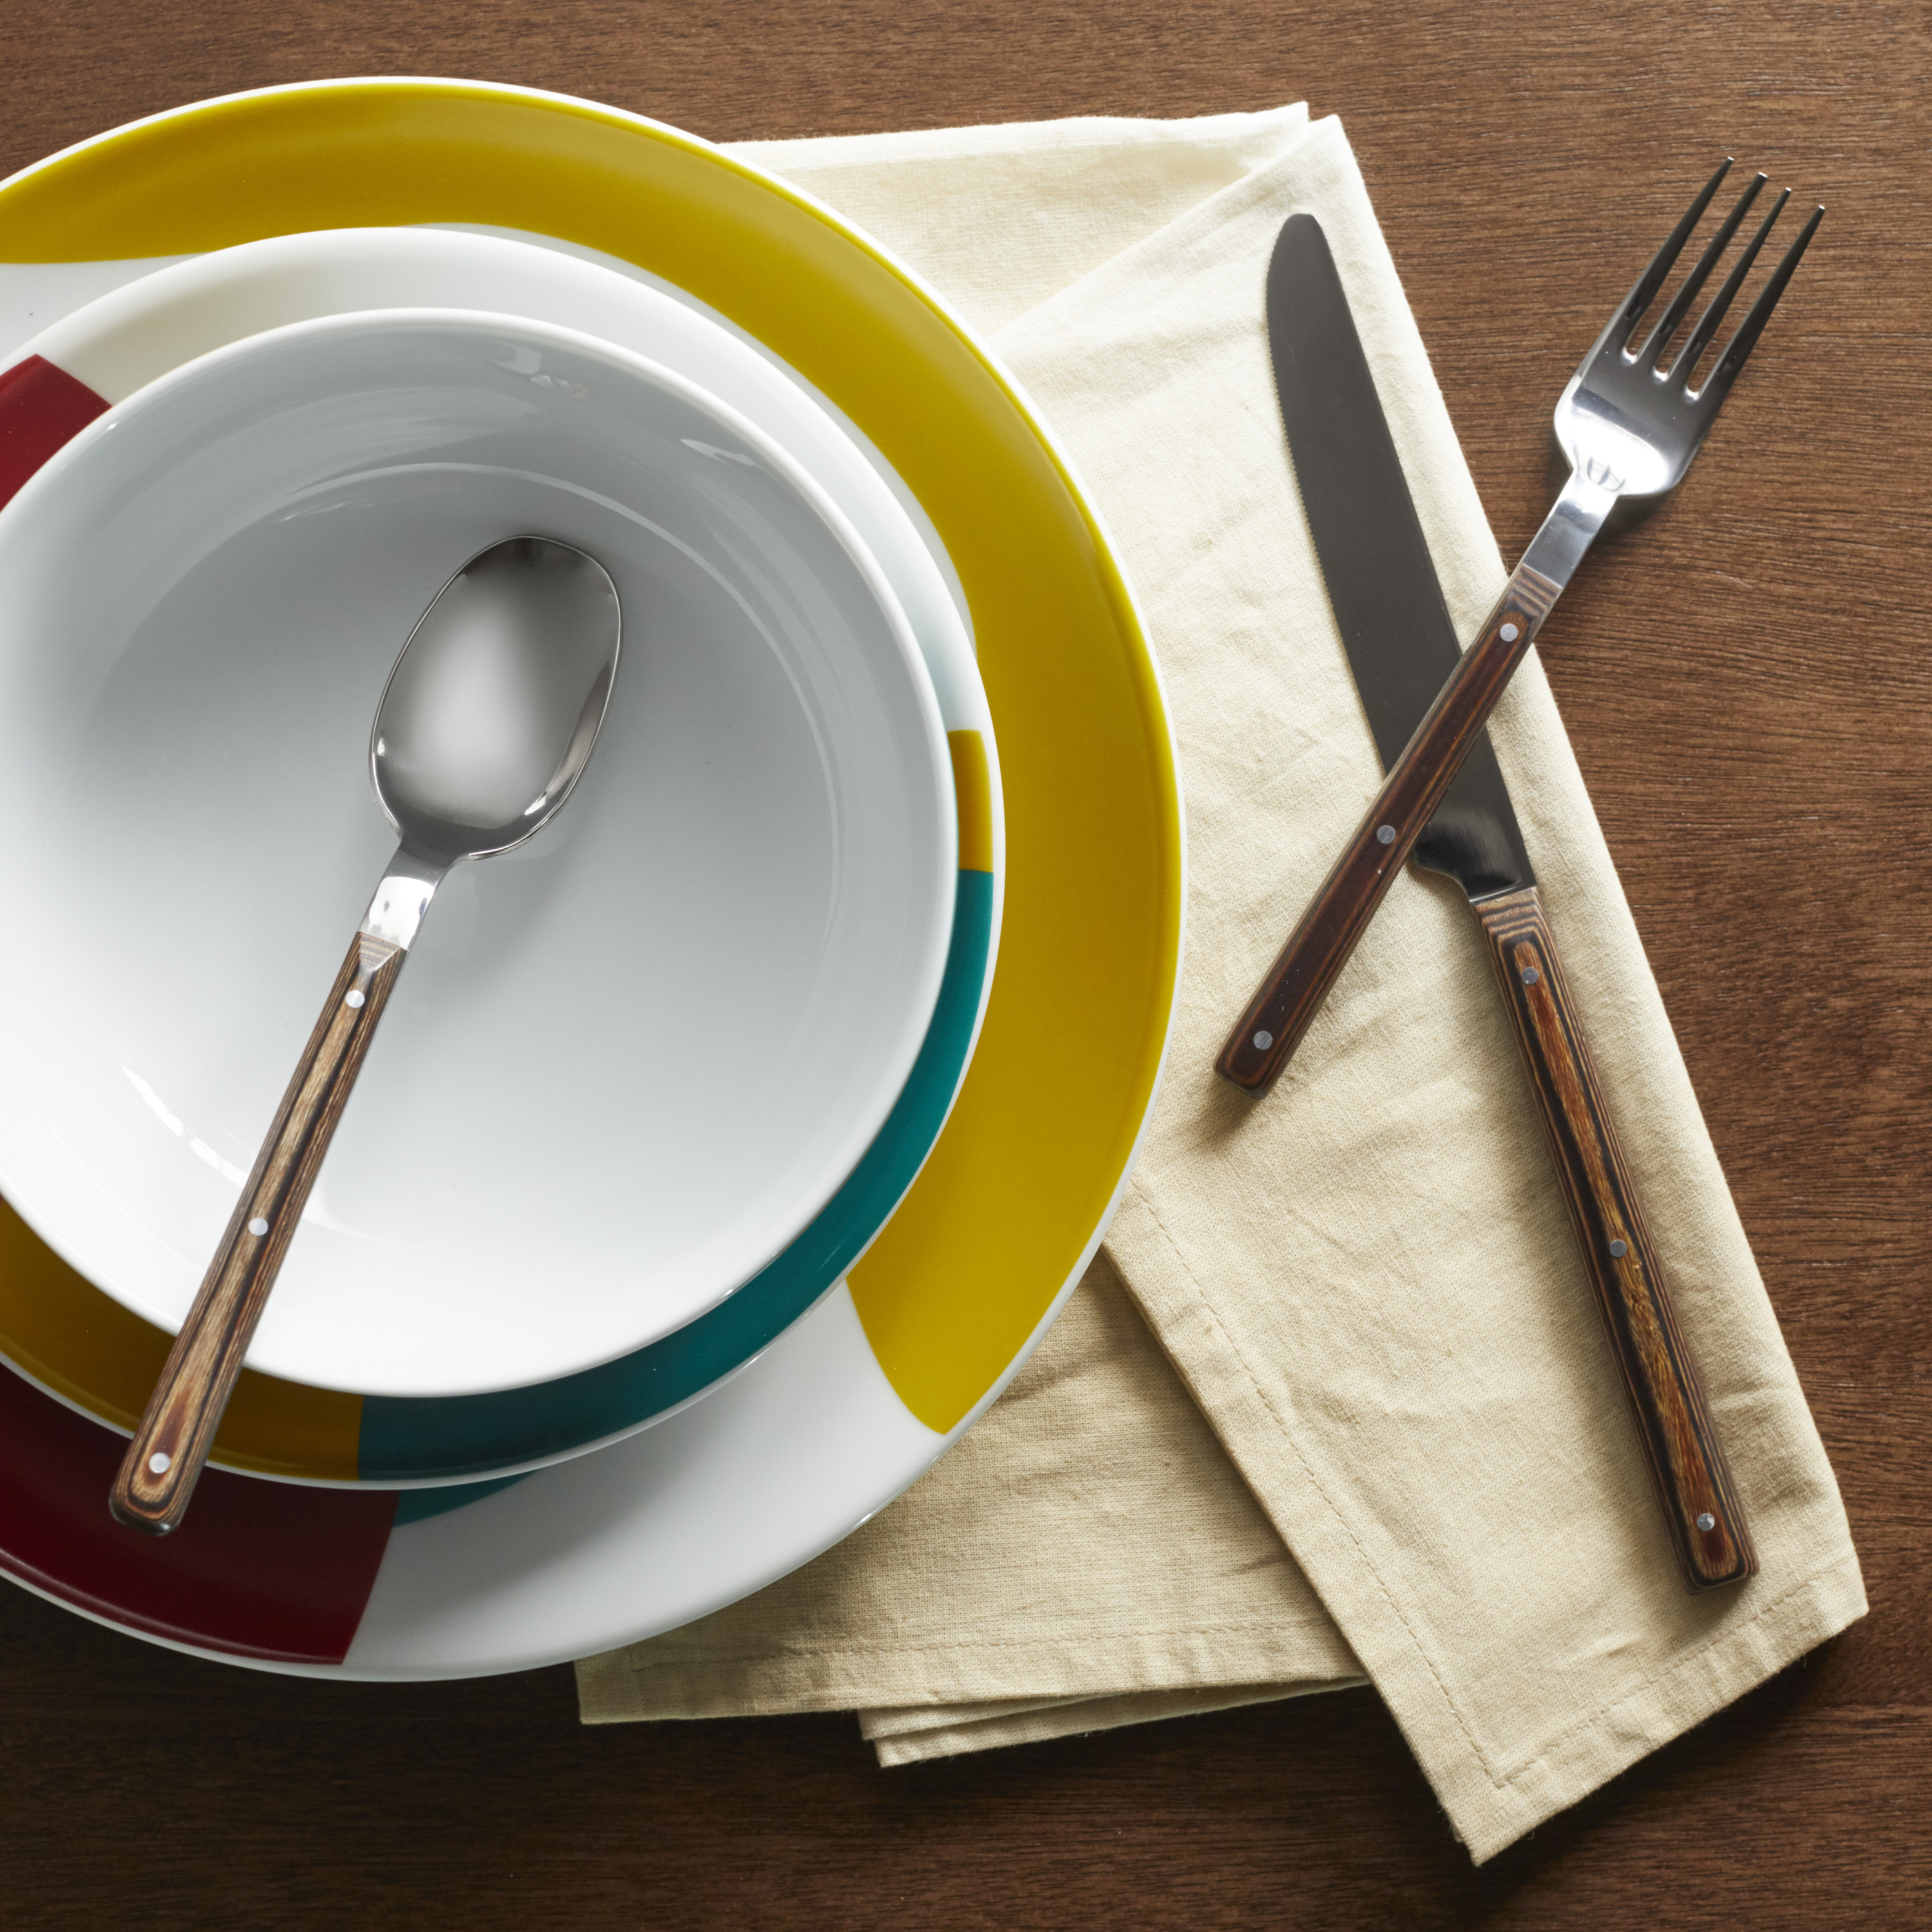 The flatware set on a place setting